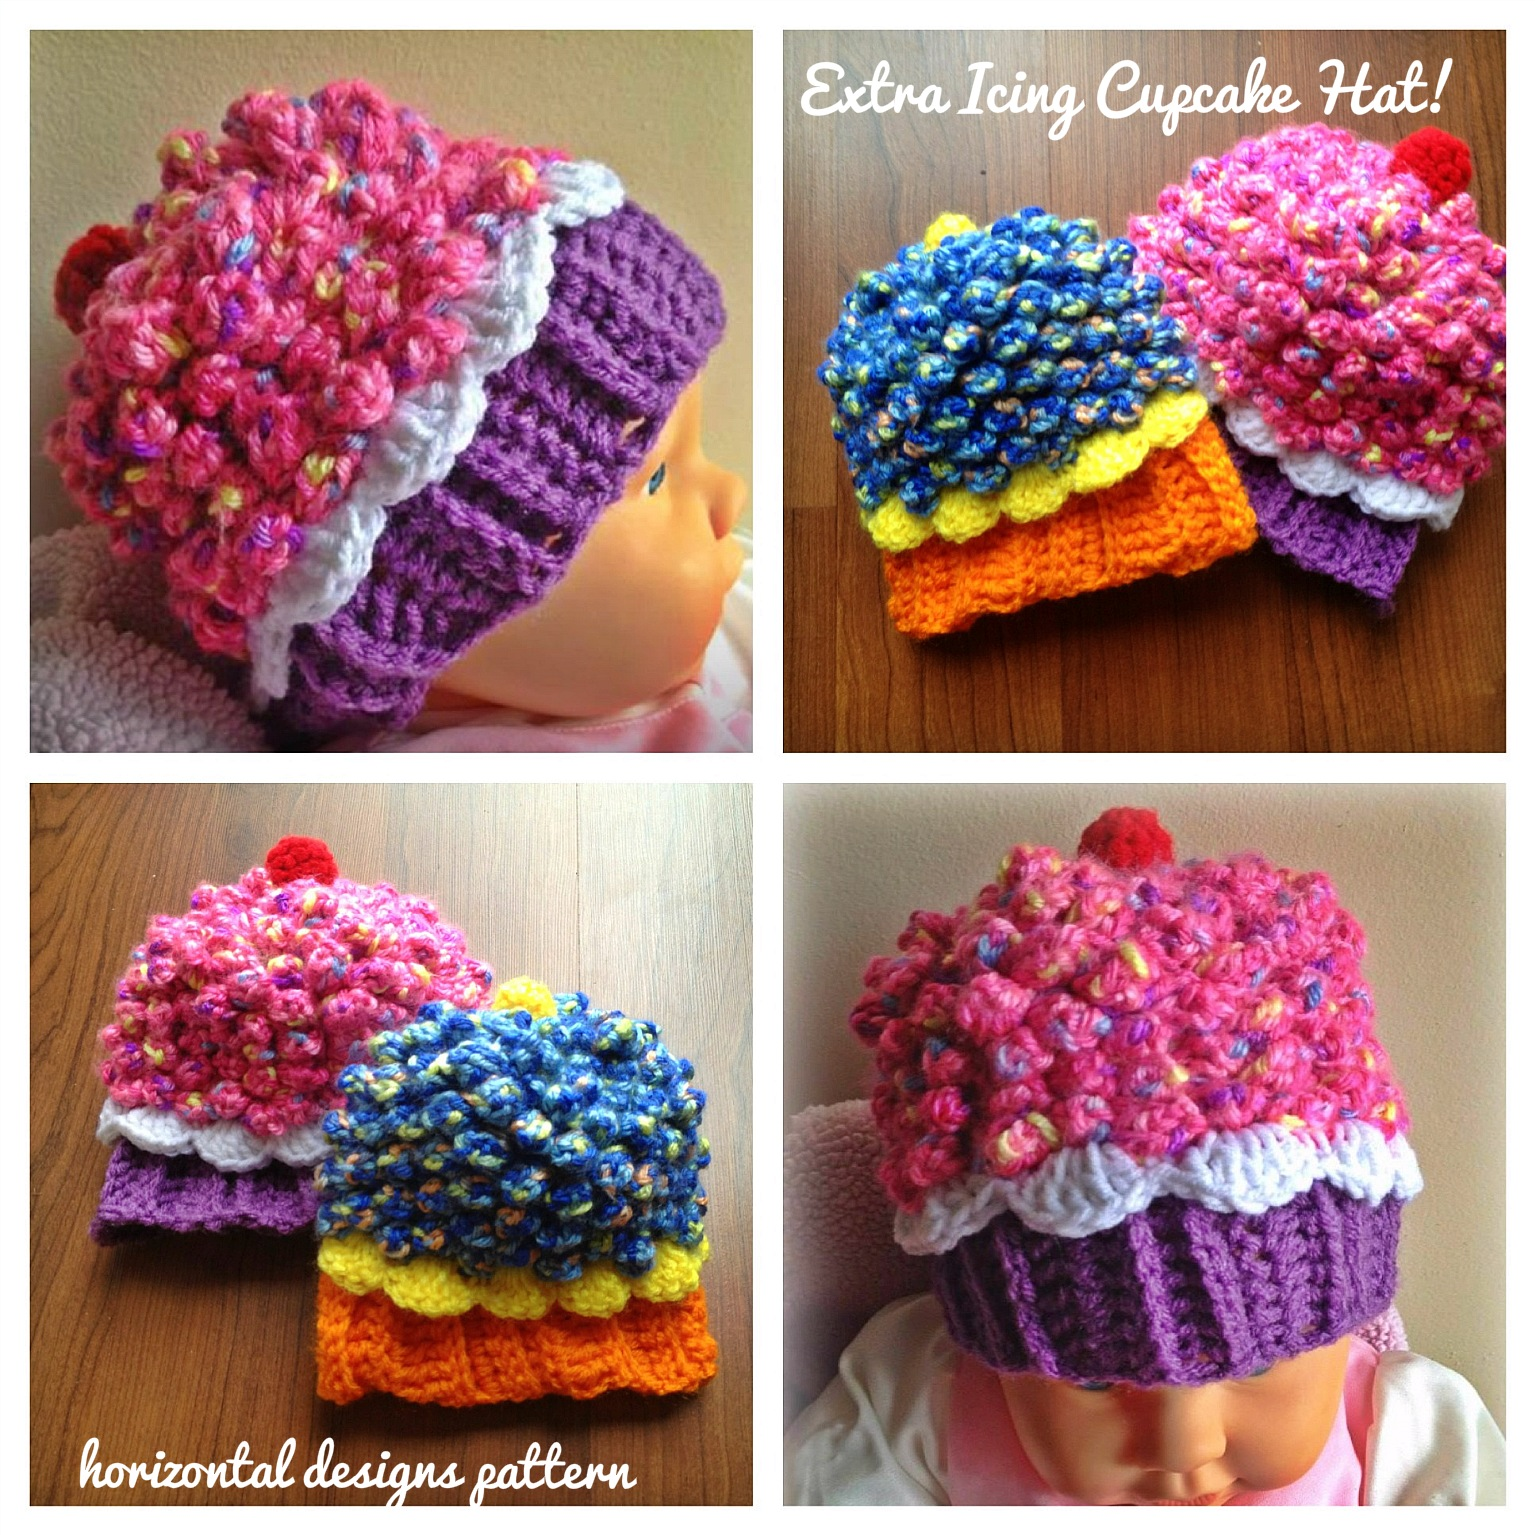 8b67e9969 Studio Create: GIVEAWAY!!!! Cupcake Hat, Extra Icing Pattern - FIVE ...